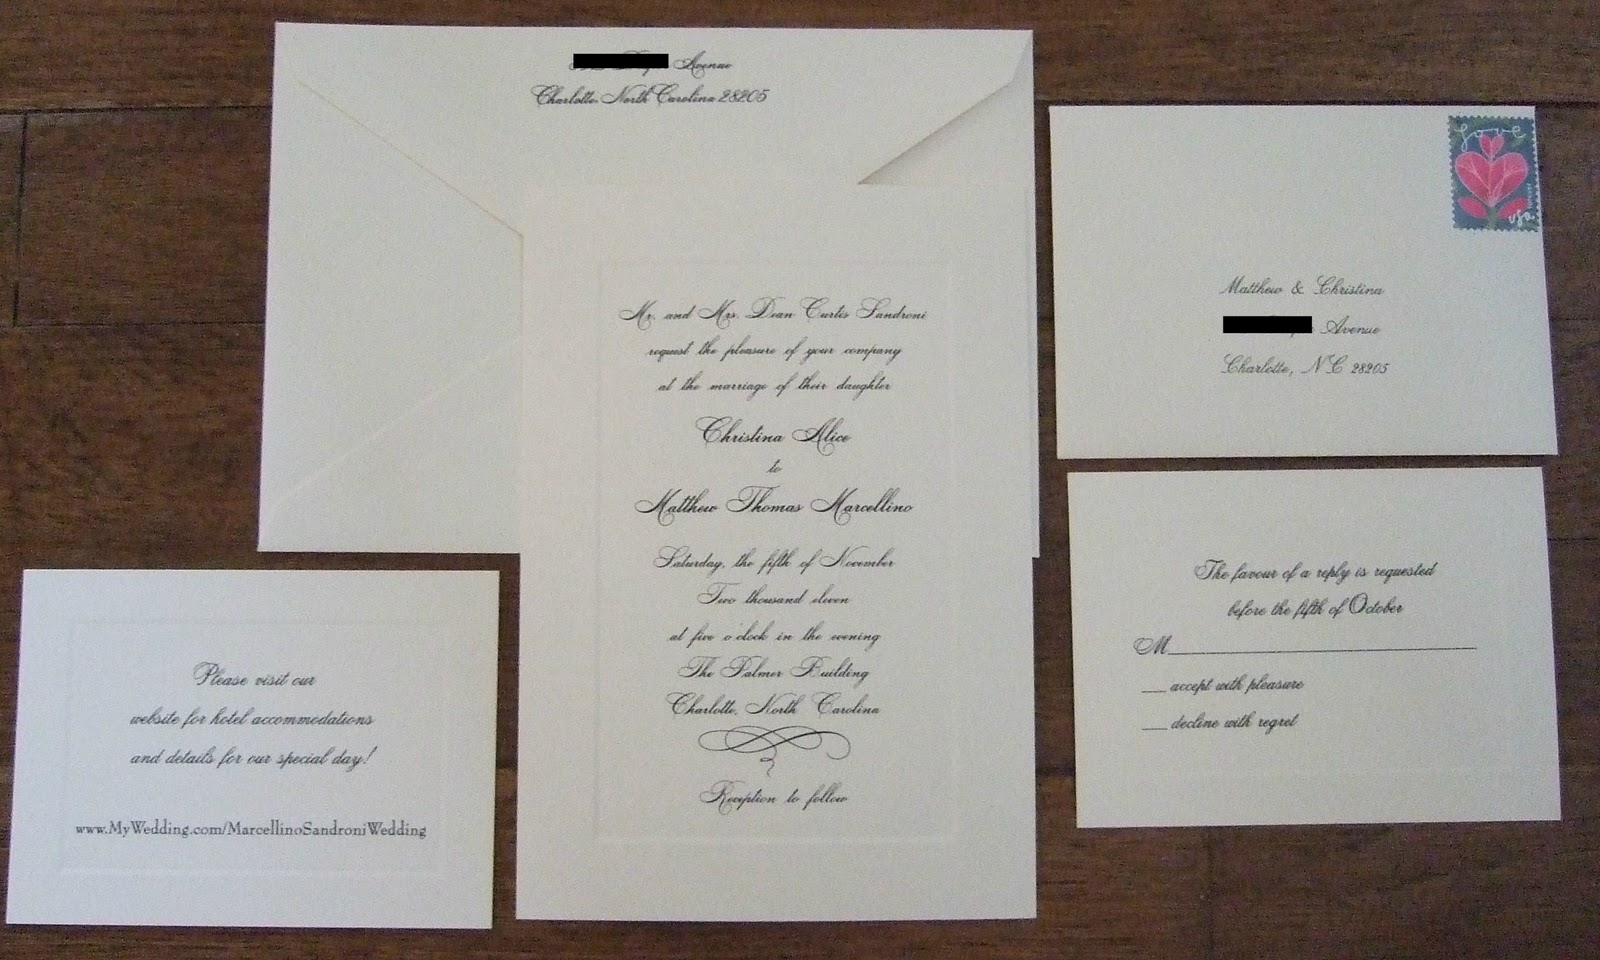 Thermography Invitation with good invitation sample